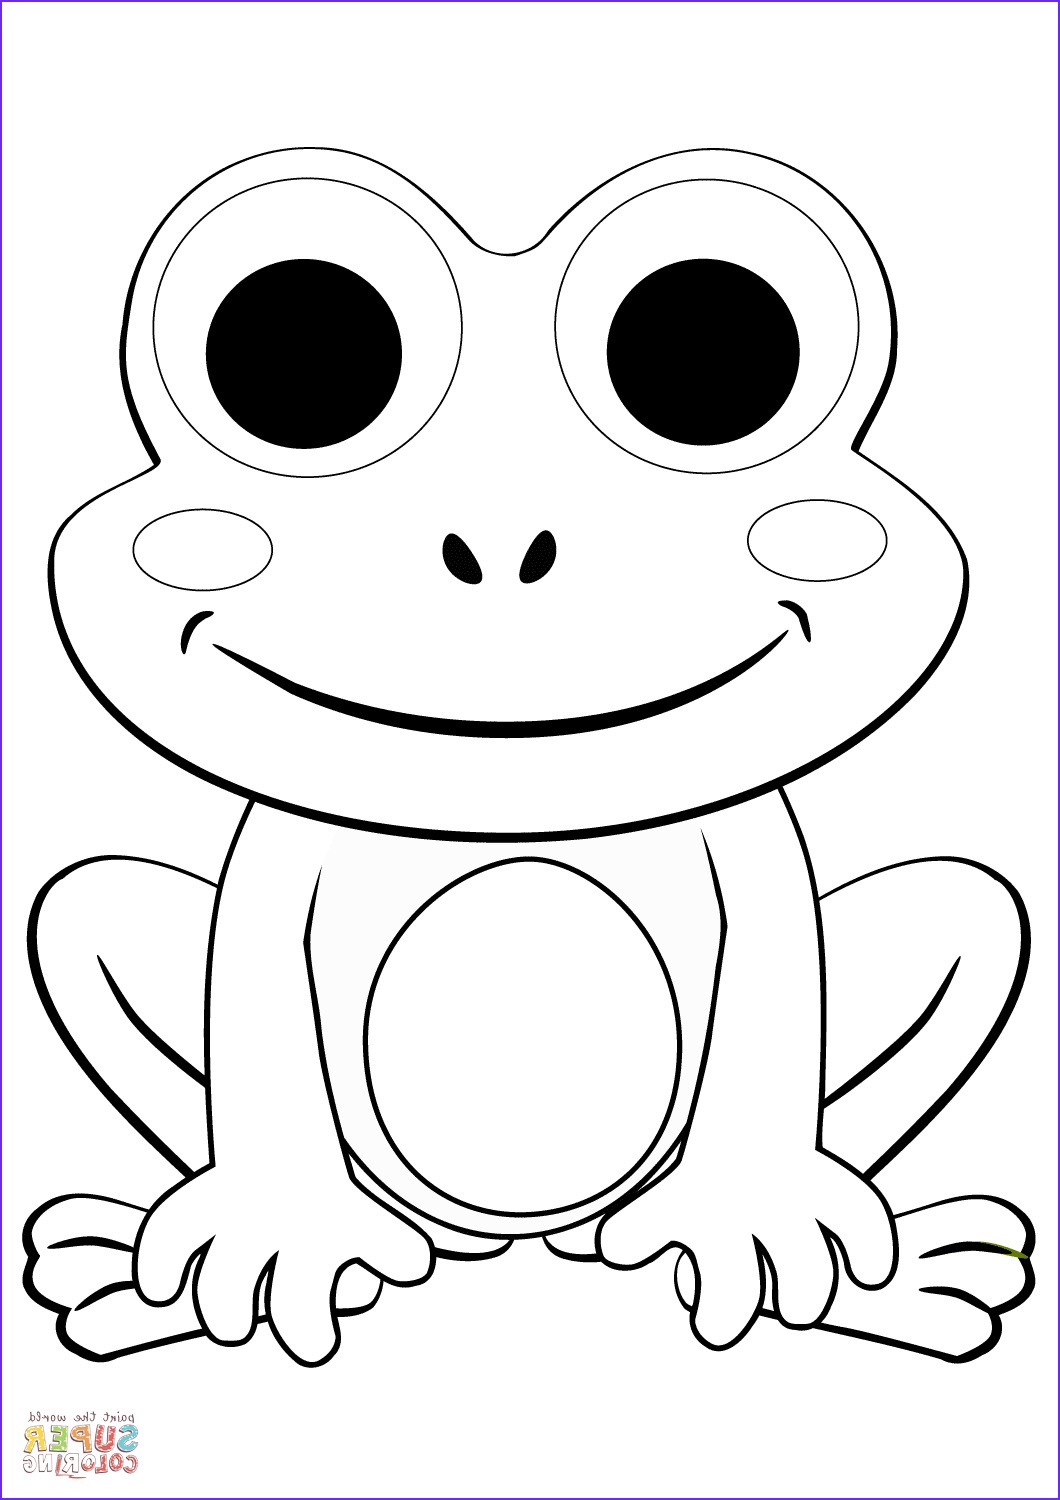 Cartoon Frog Coloring Page Beautiful Images Cute Cartoon Frog Coloring Page